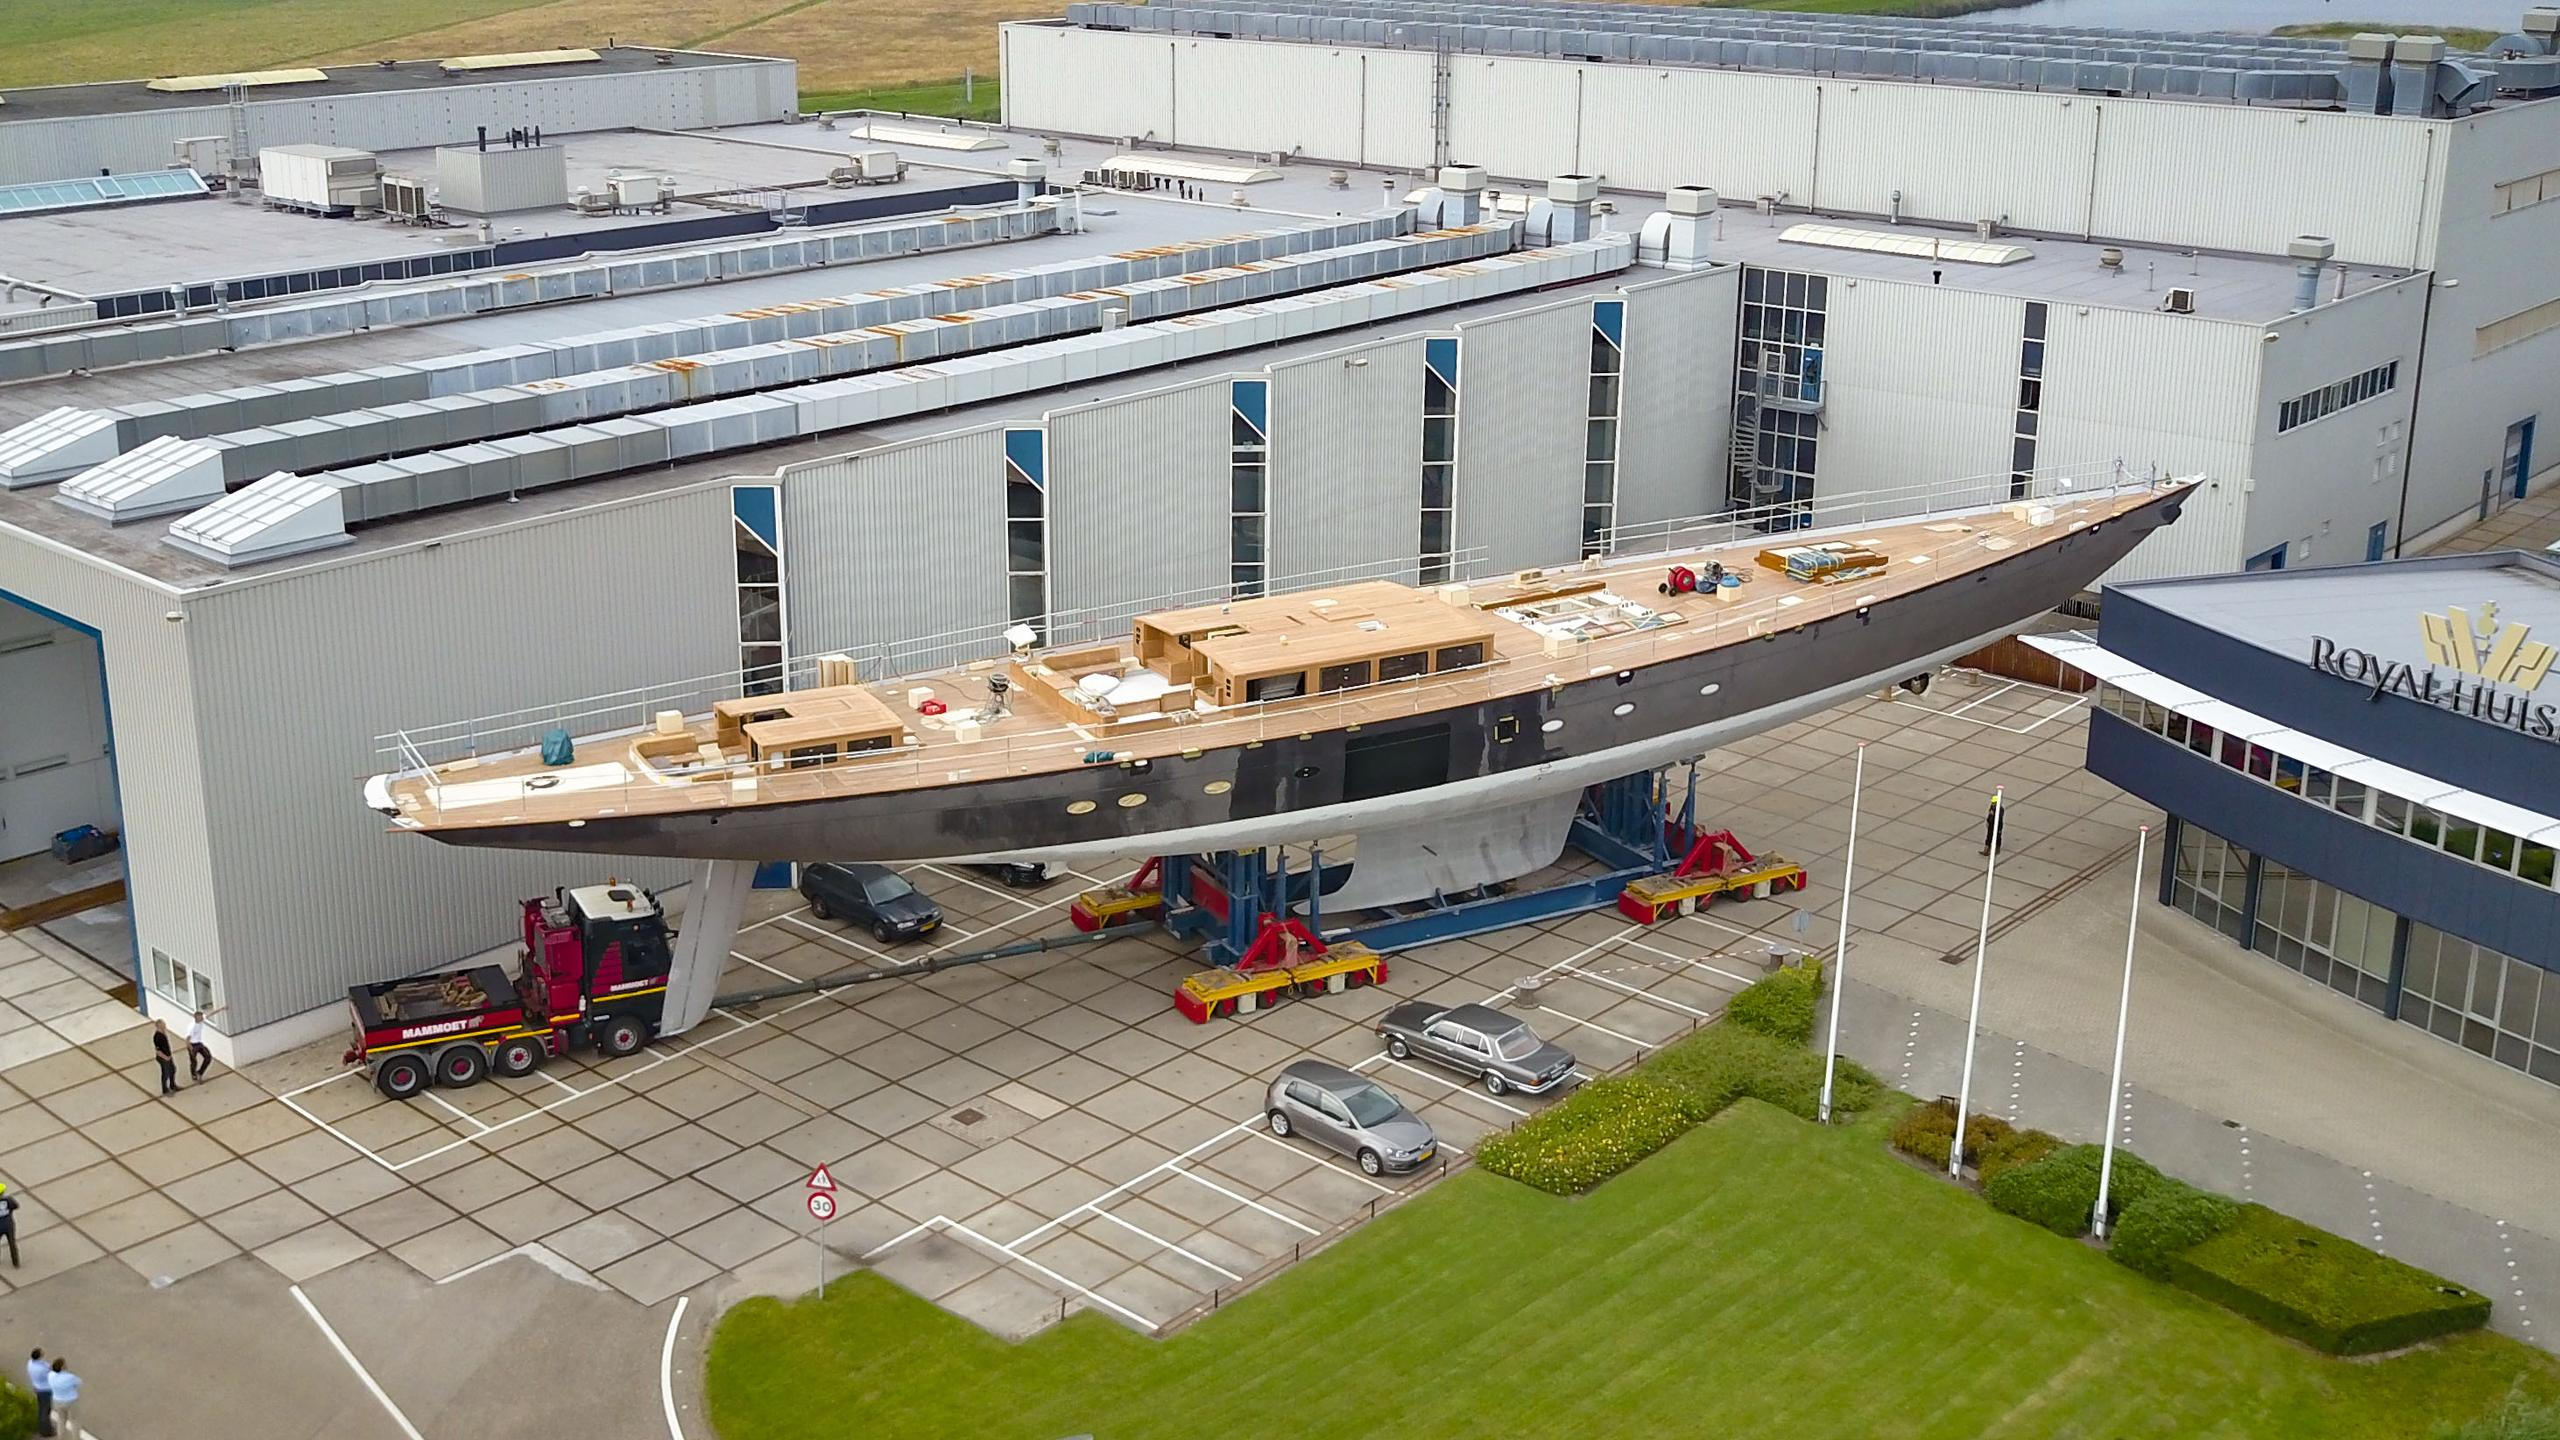 Royal Huisman launches 'Project RH399' as 'Aquarius'.